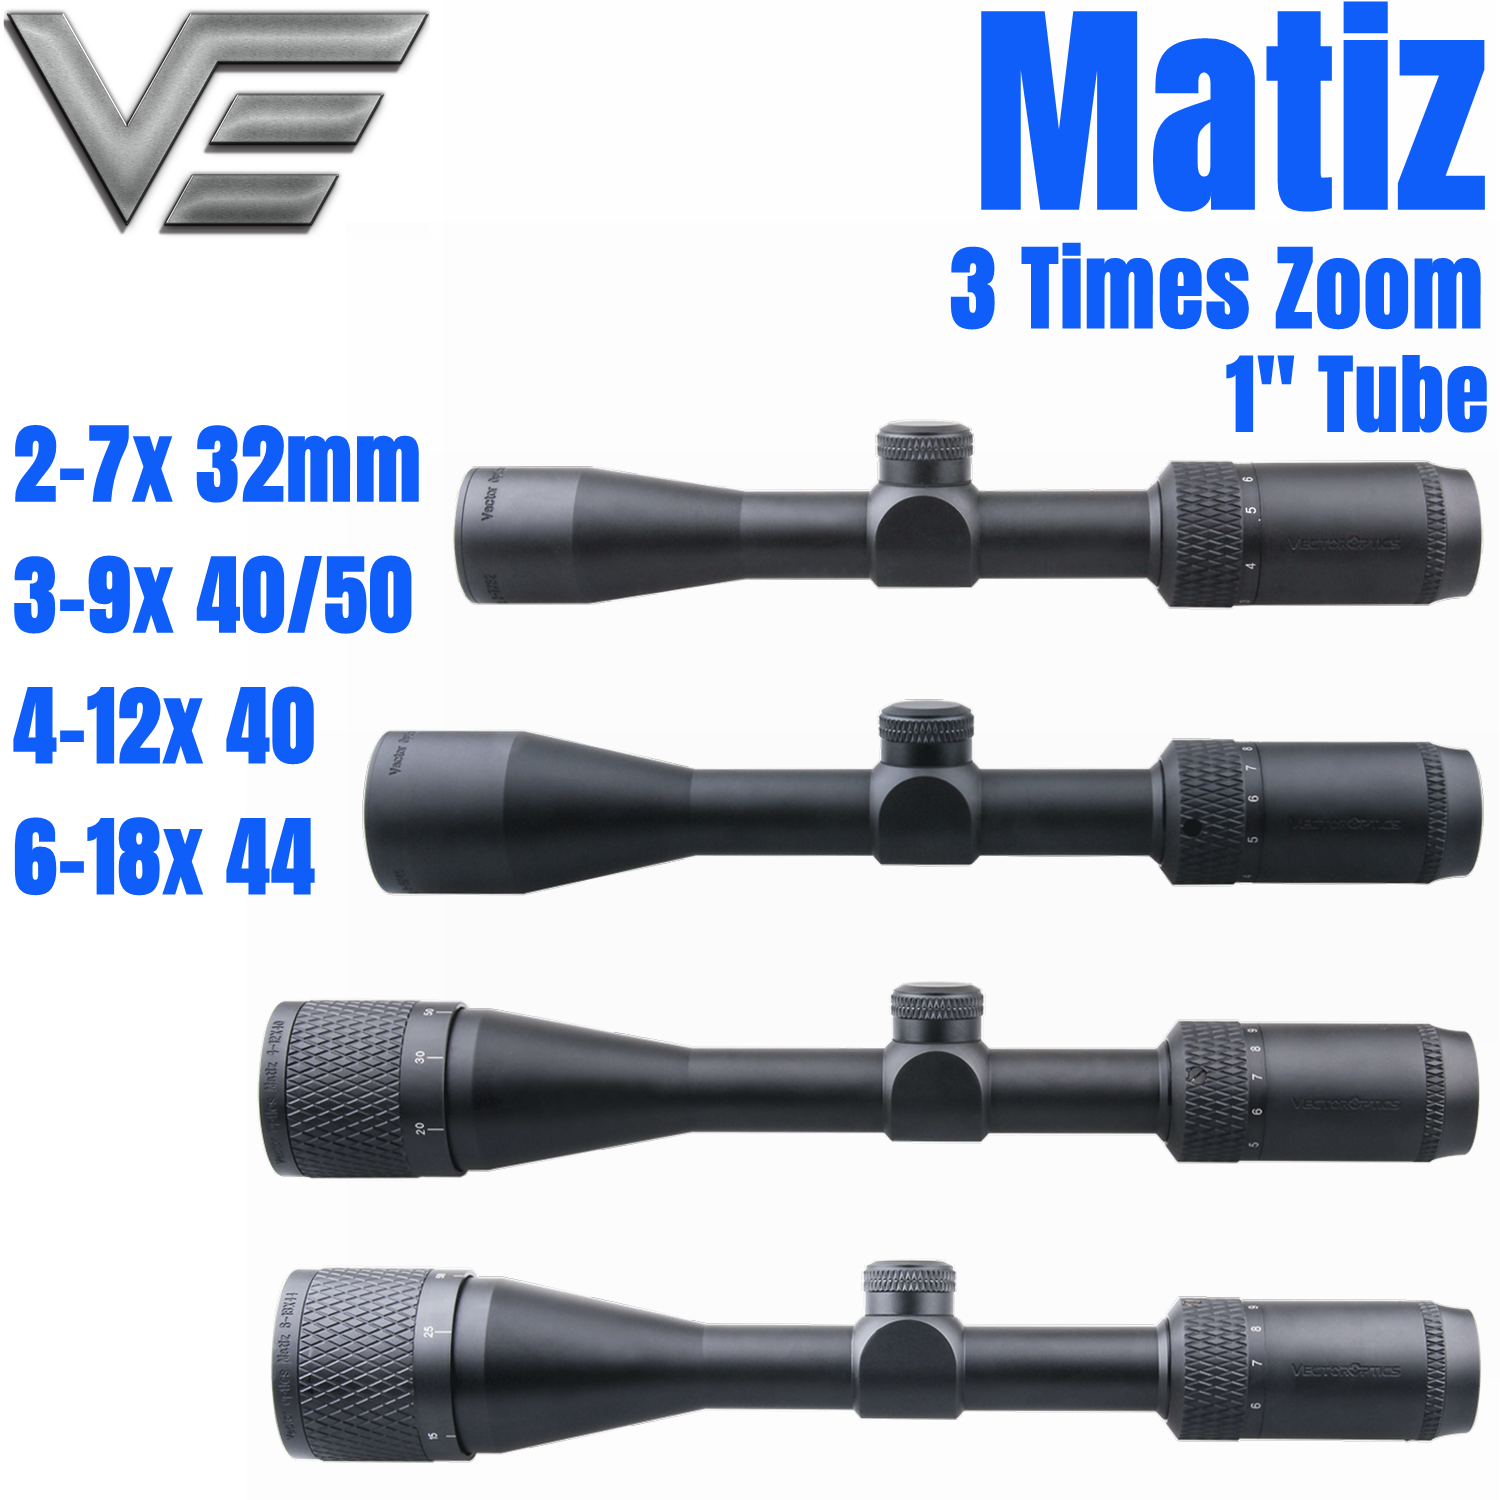 Vector Optics Matiz 1 Inch 2-7x32 3-9x40 4-12x40 6-18x44 AO 1/4 MOA Vamint Shooting Huting Rifle Scope Riflescope